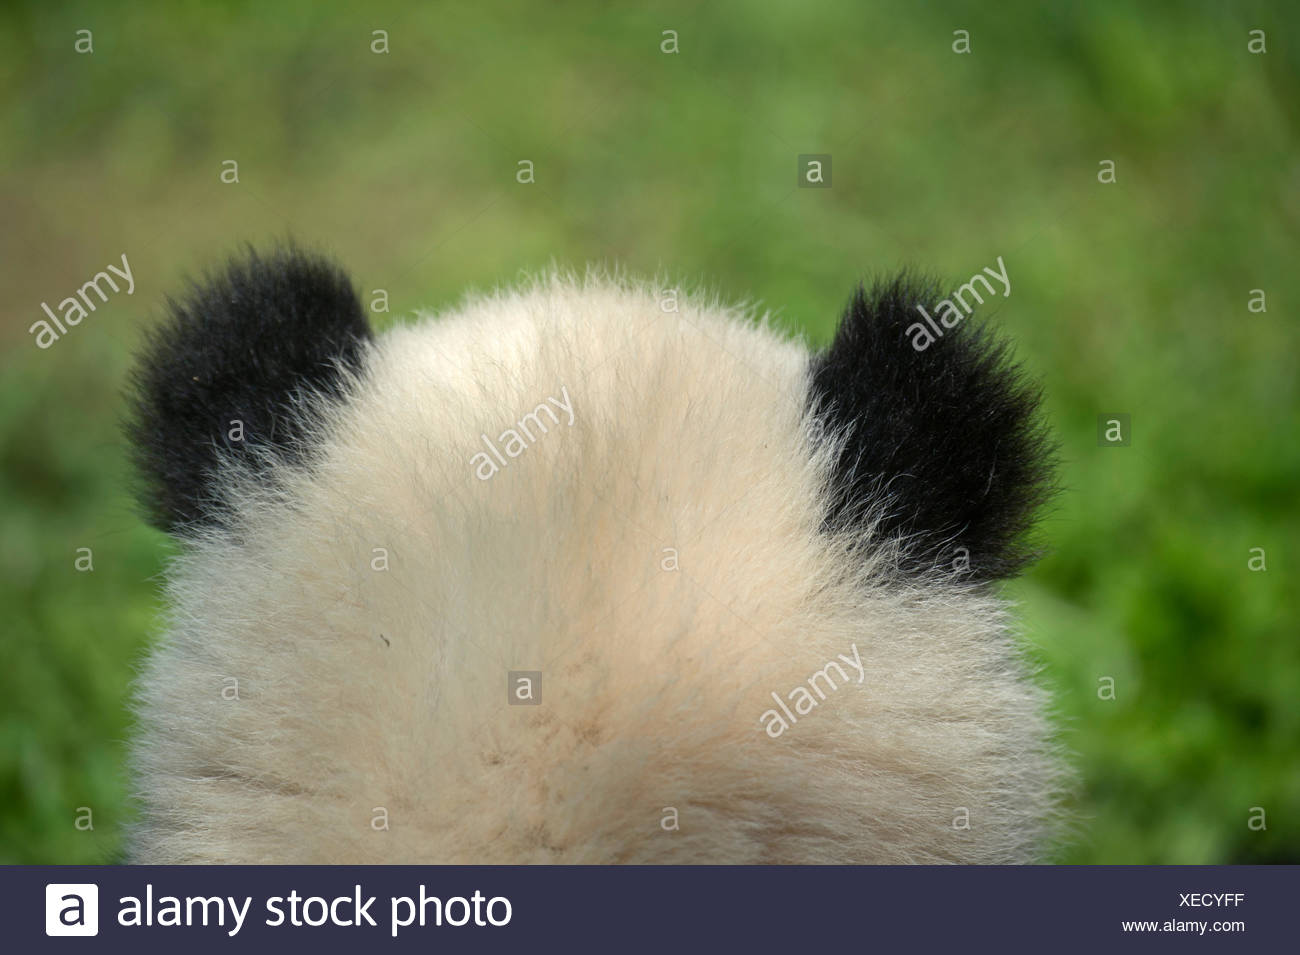 A six-month old giant panda at the Djianyan Panda Base. - Stock Image